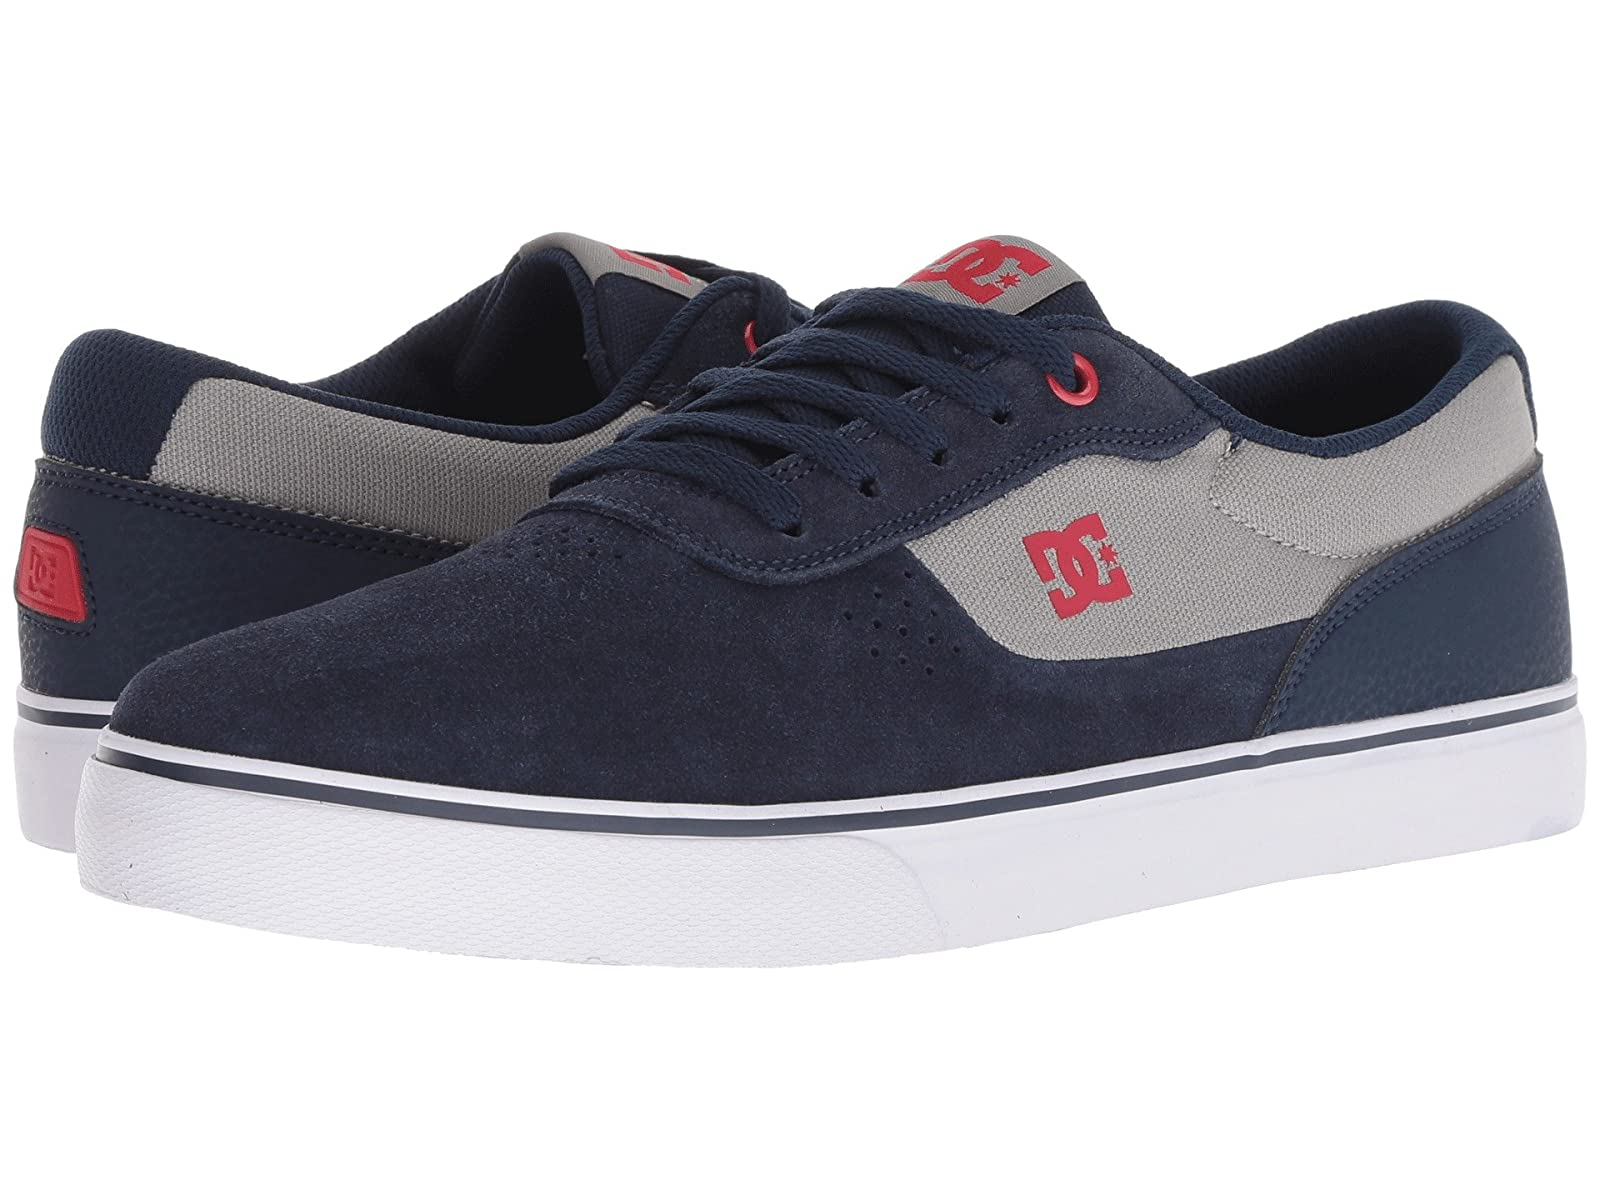 DC SwitchAtmospheric grades have affordable shoes